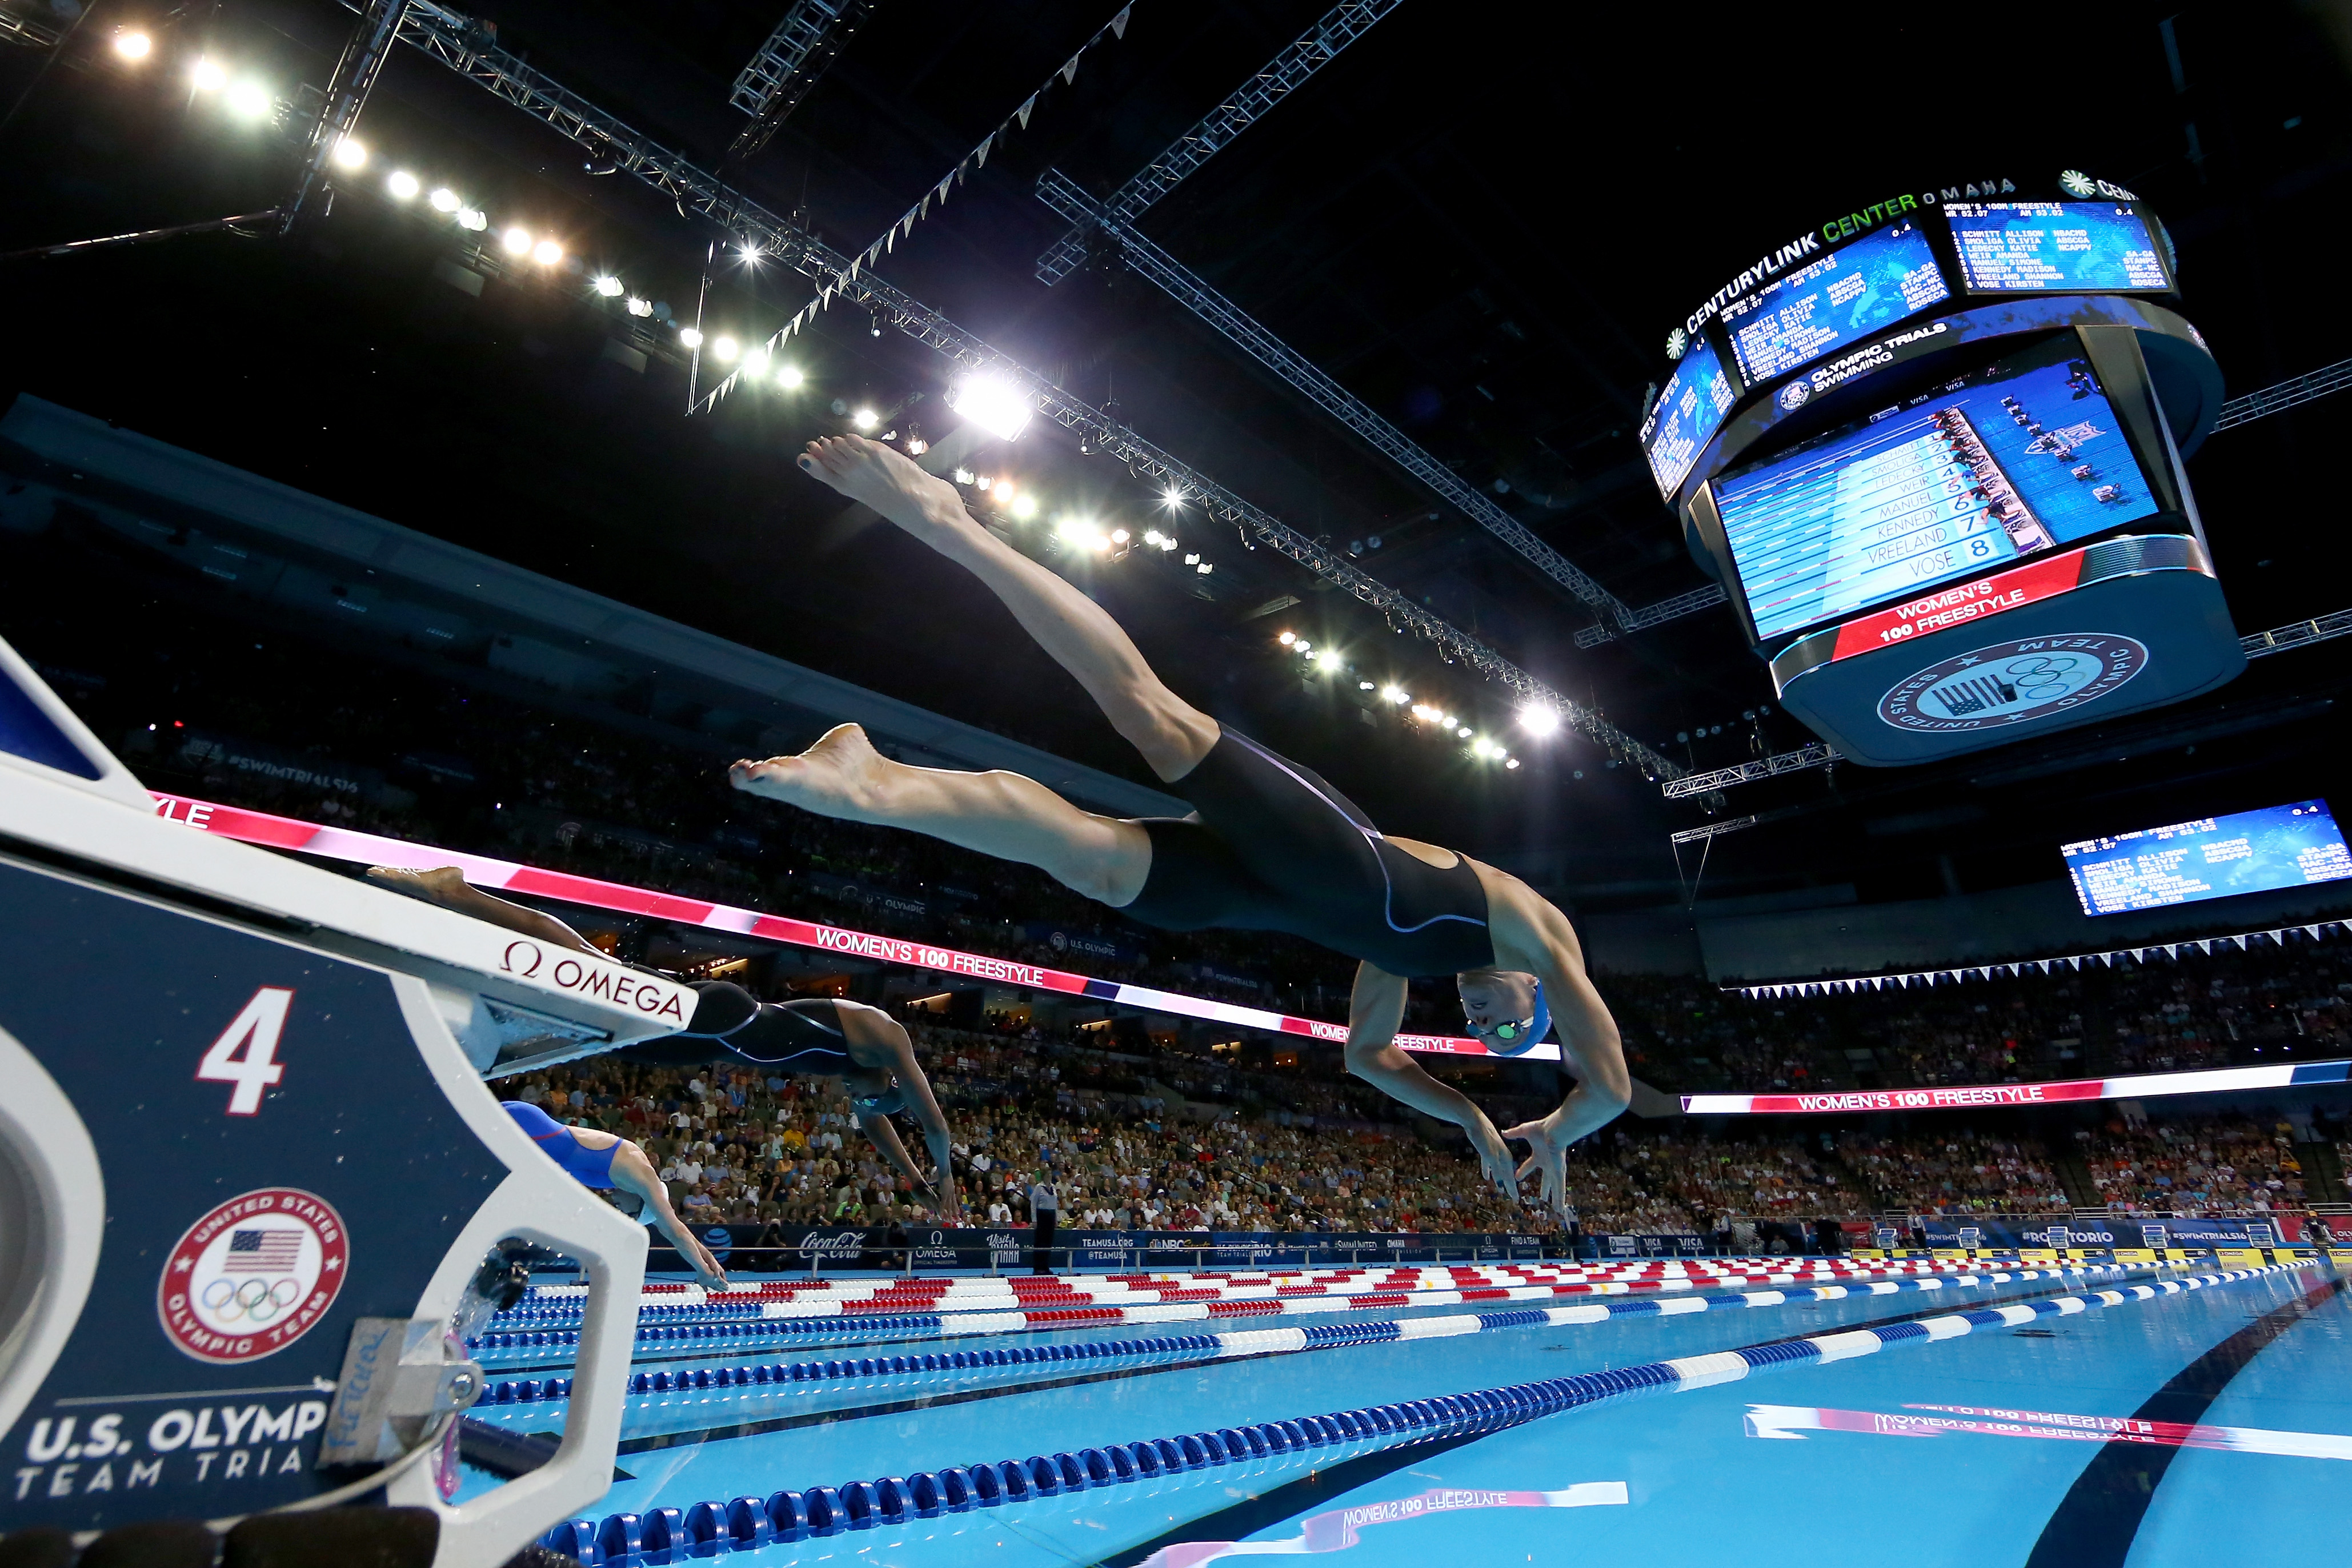 How to watch the olympics in virtual reality give yourself an eye how to watch the olympics in virtual reality give yourself an eye opening experience solutioingenieria Images